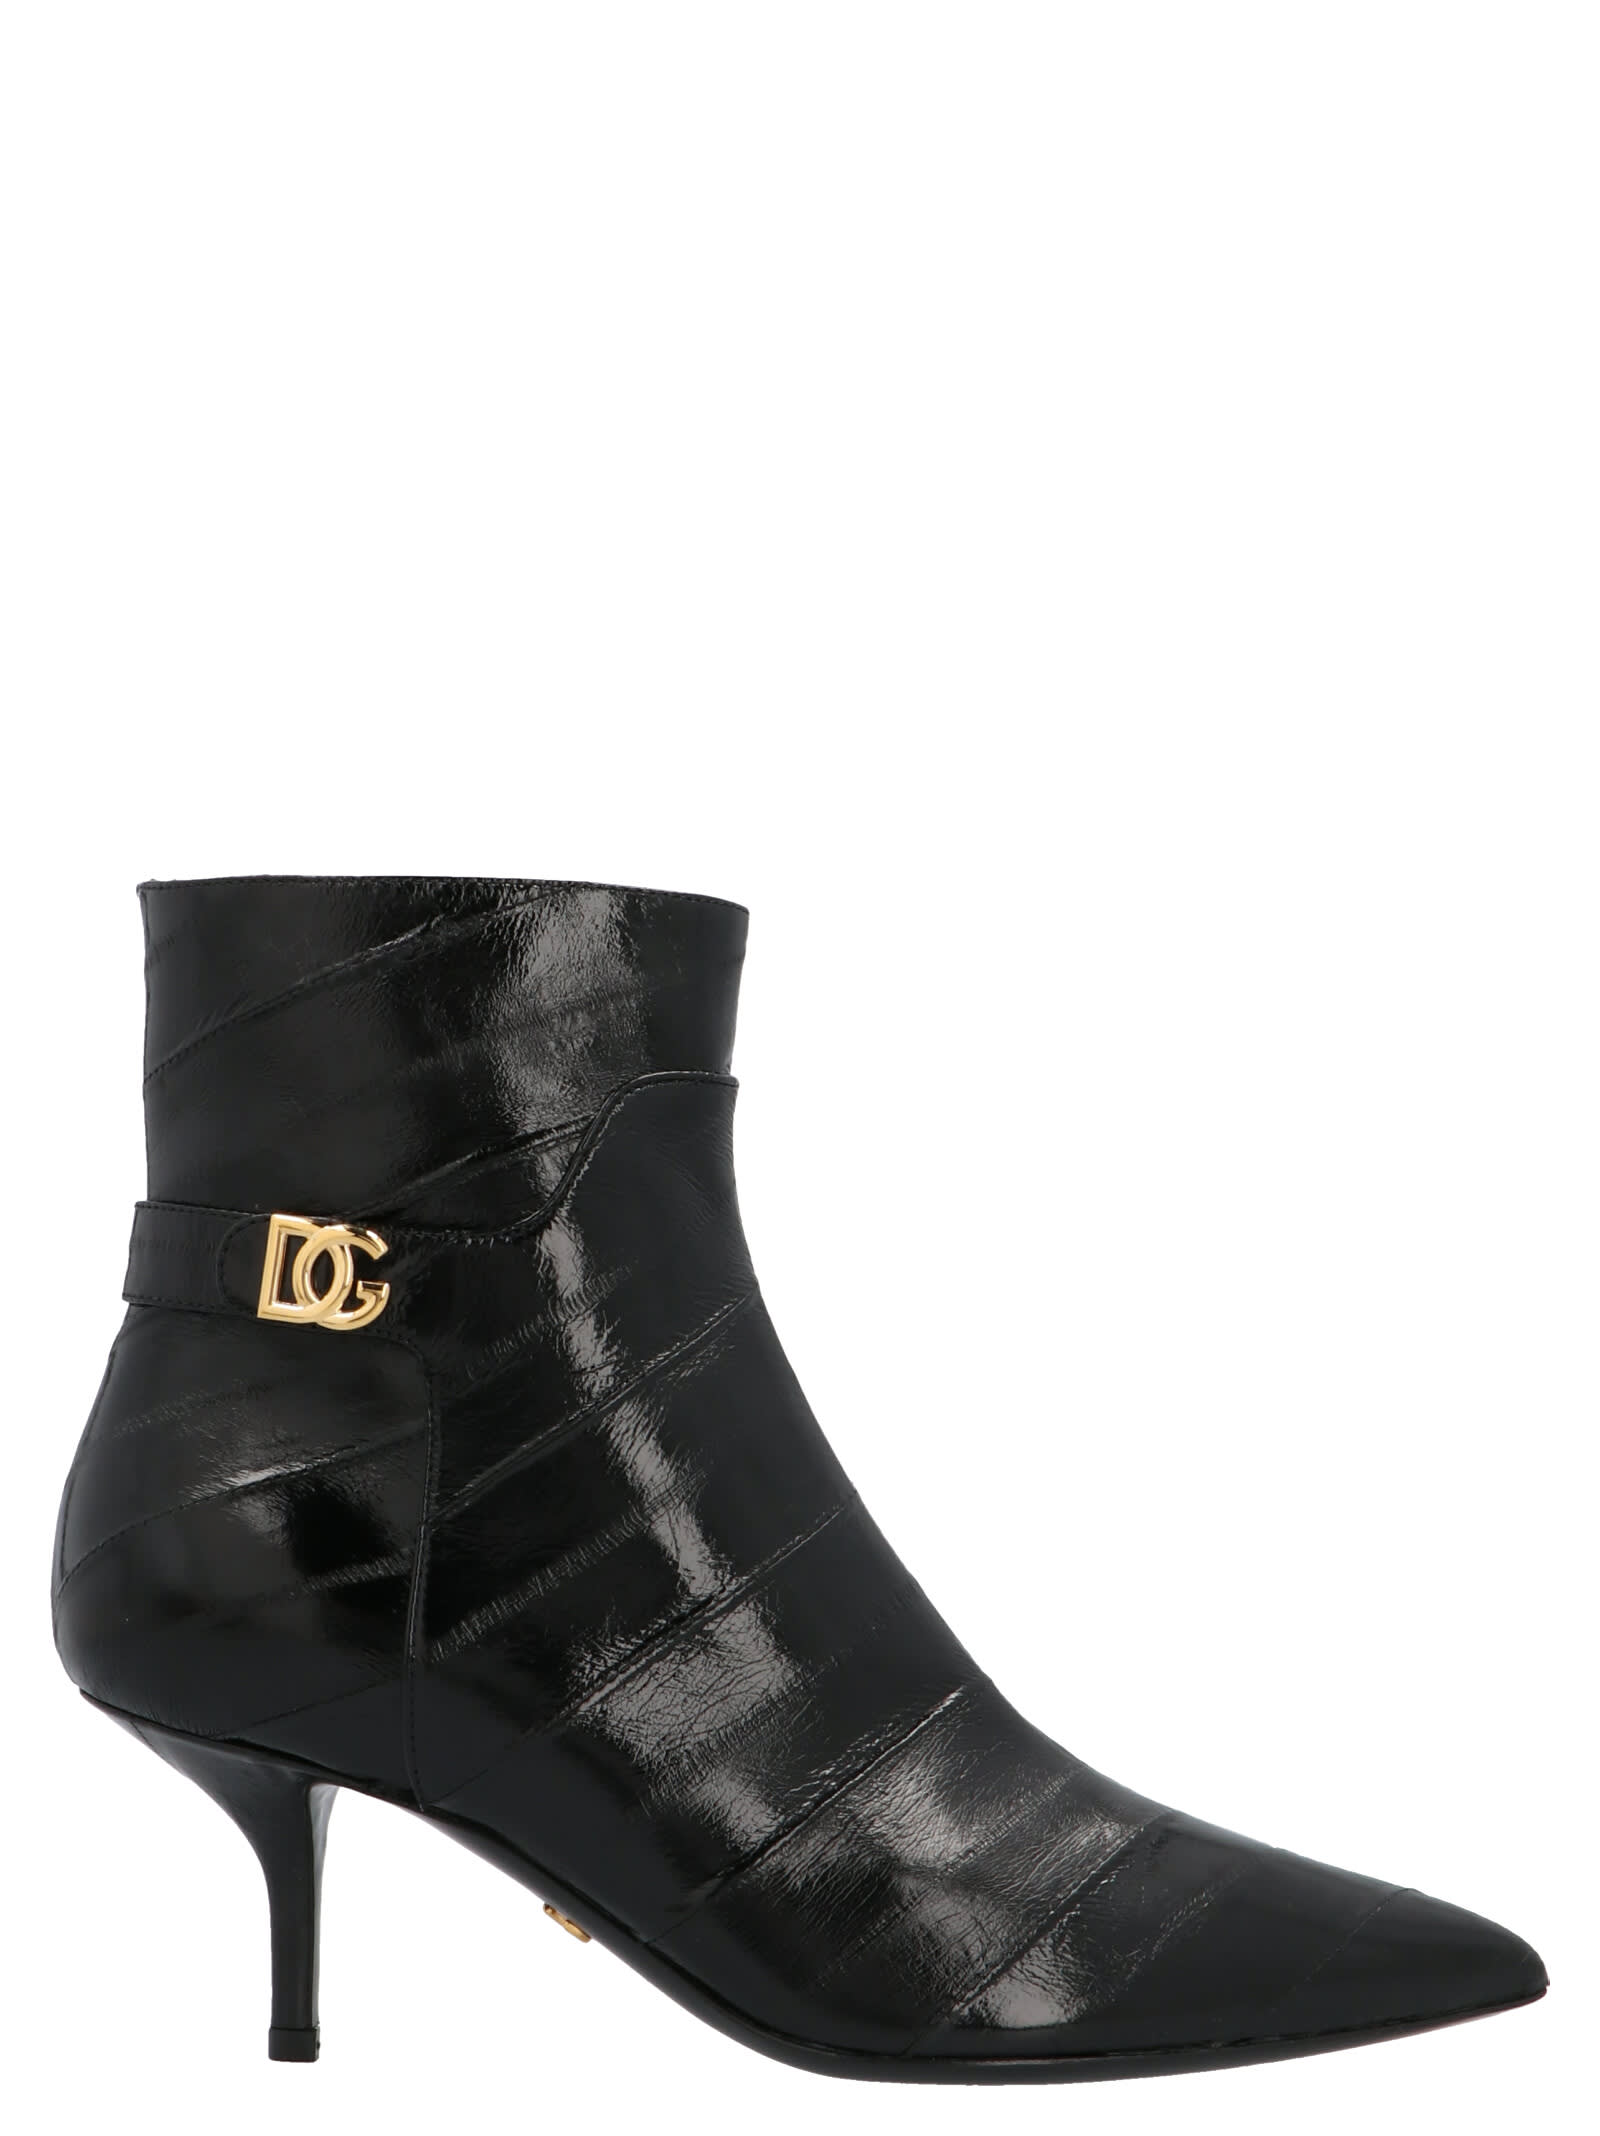 Dolce & Gabbana Point-toe Leather Ankle Boots